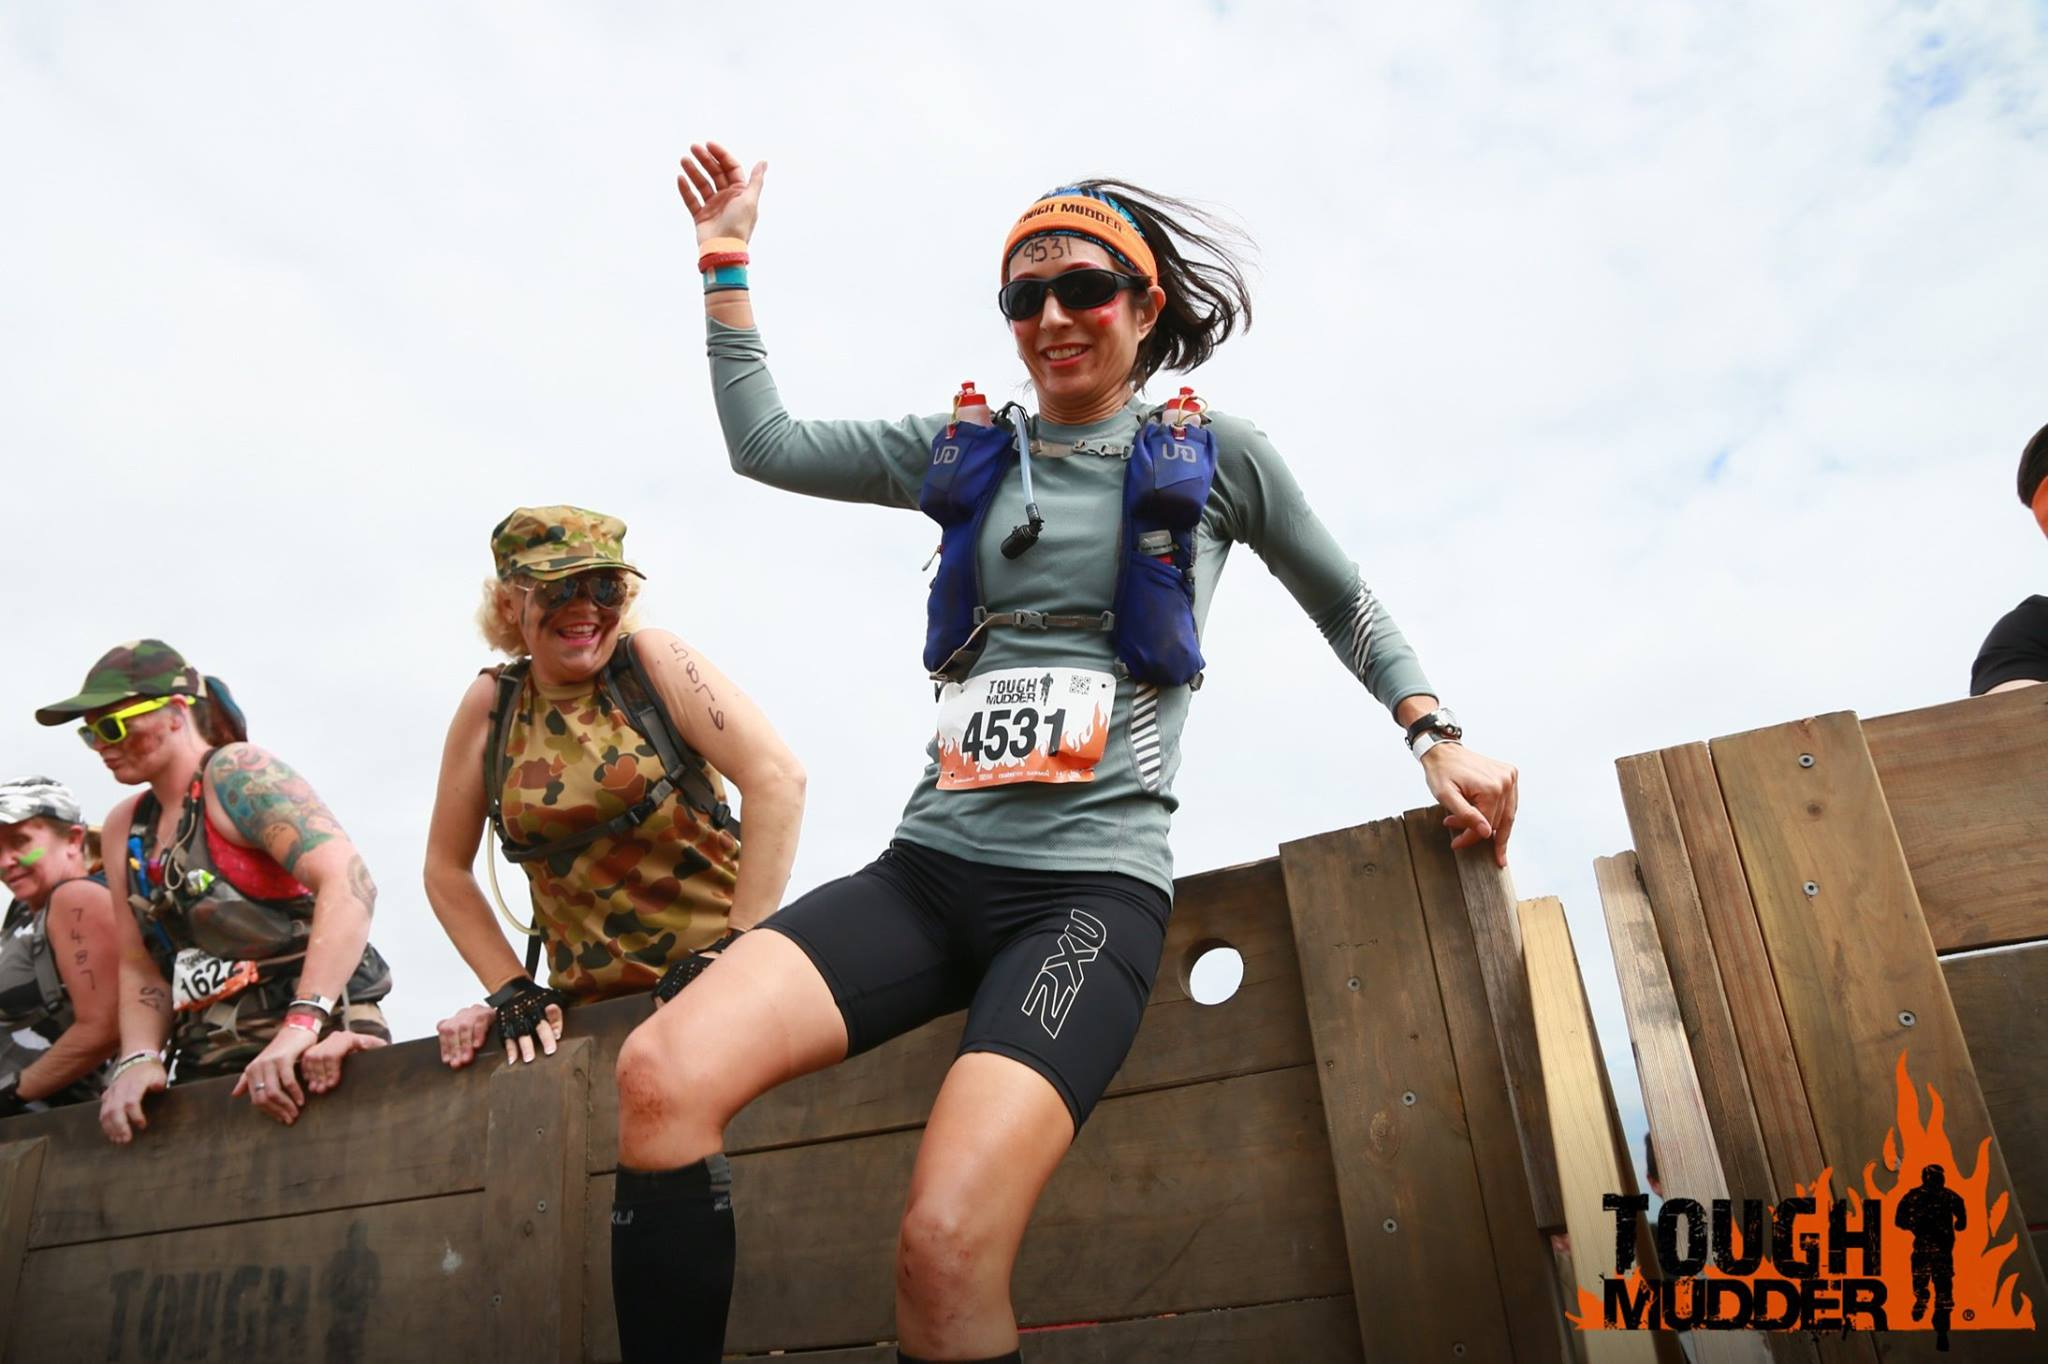 Sandra participating in Tough Mudder